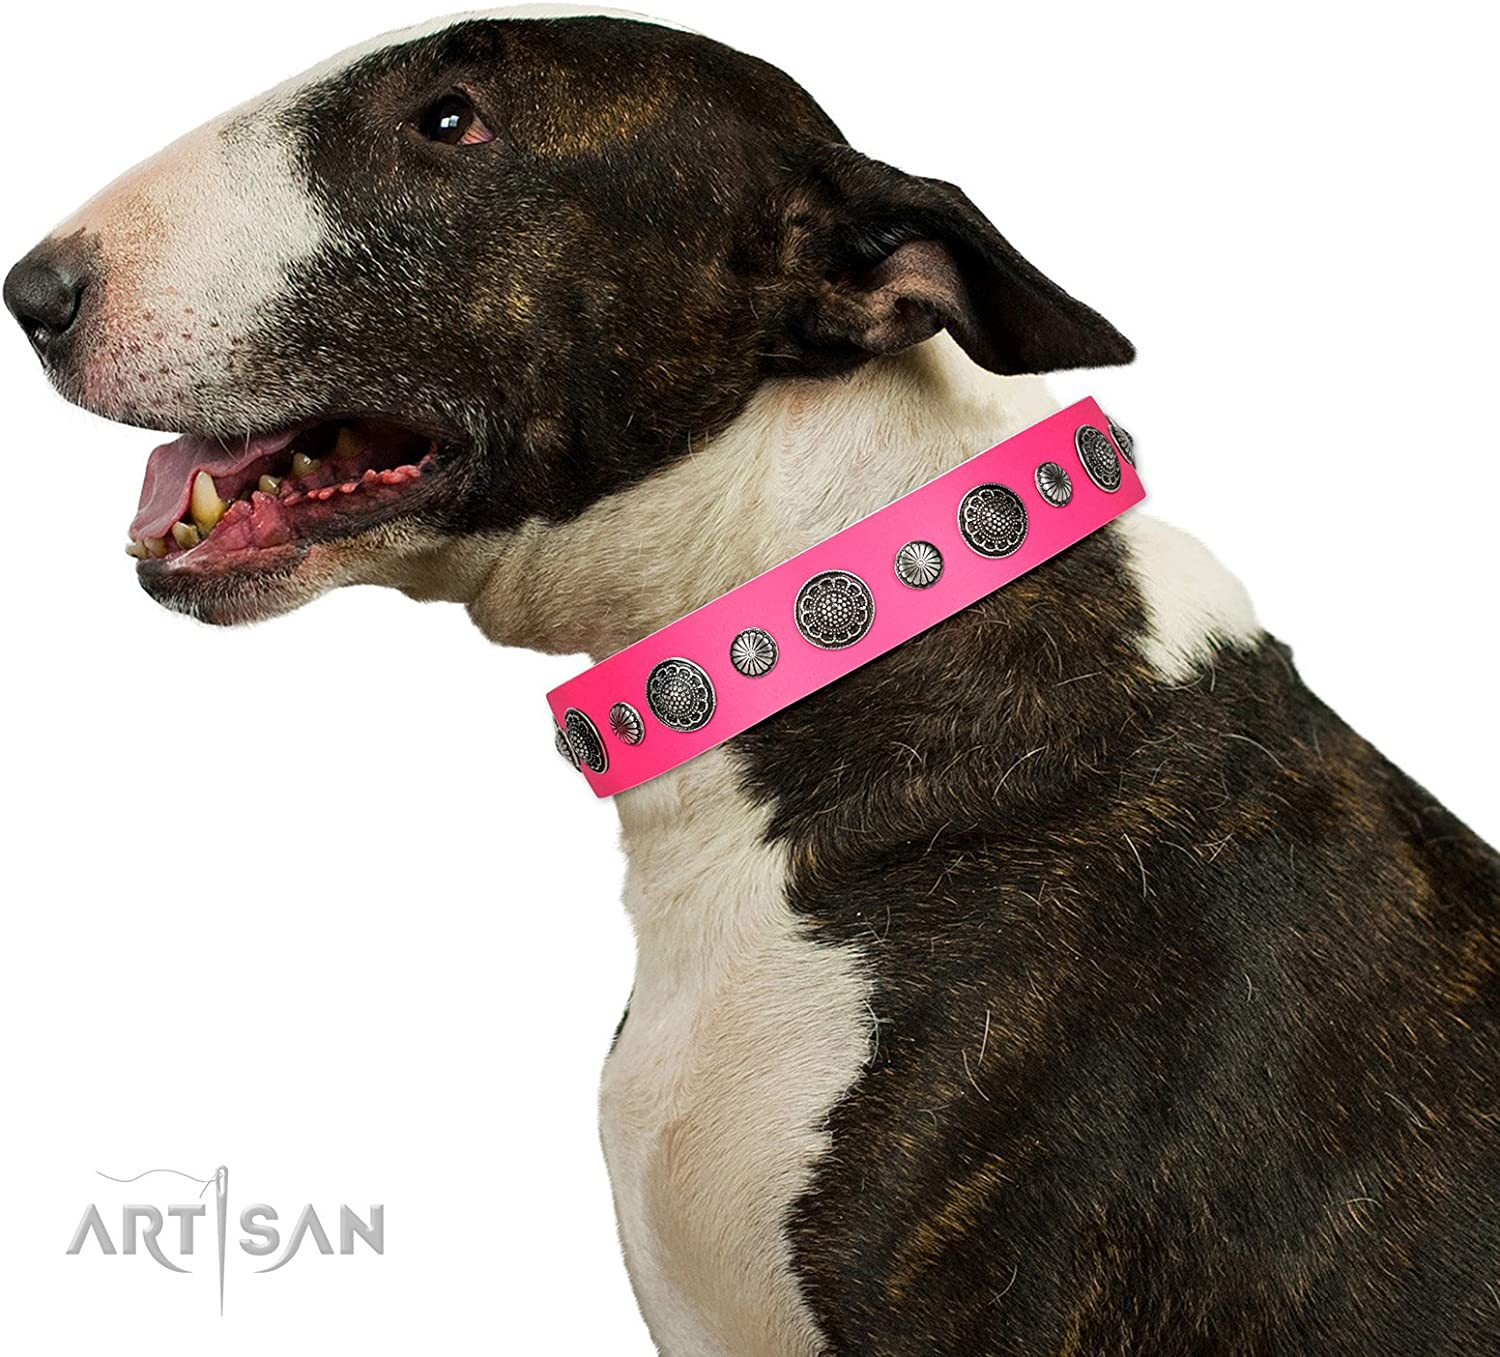 FDT Artisan 16 inch Pink Leather Dog Collar   Vintage Elegance   1 1 2 inch (40 mm) wide  Gift Box Included